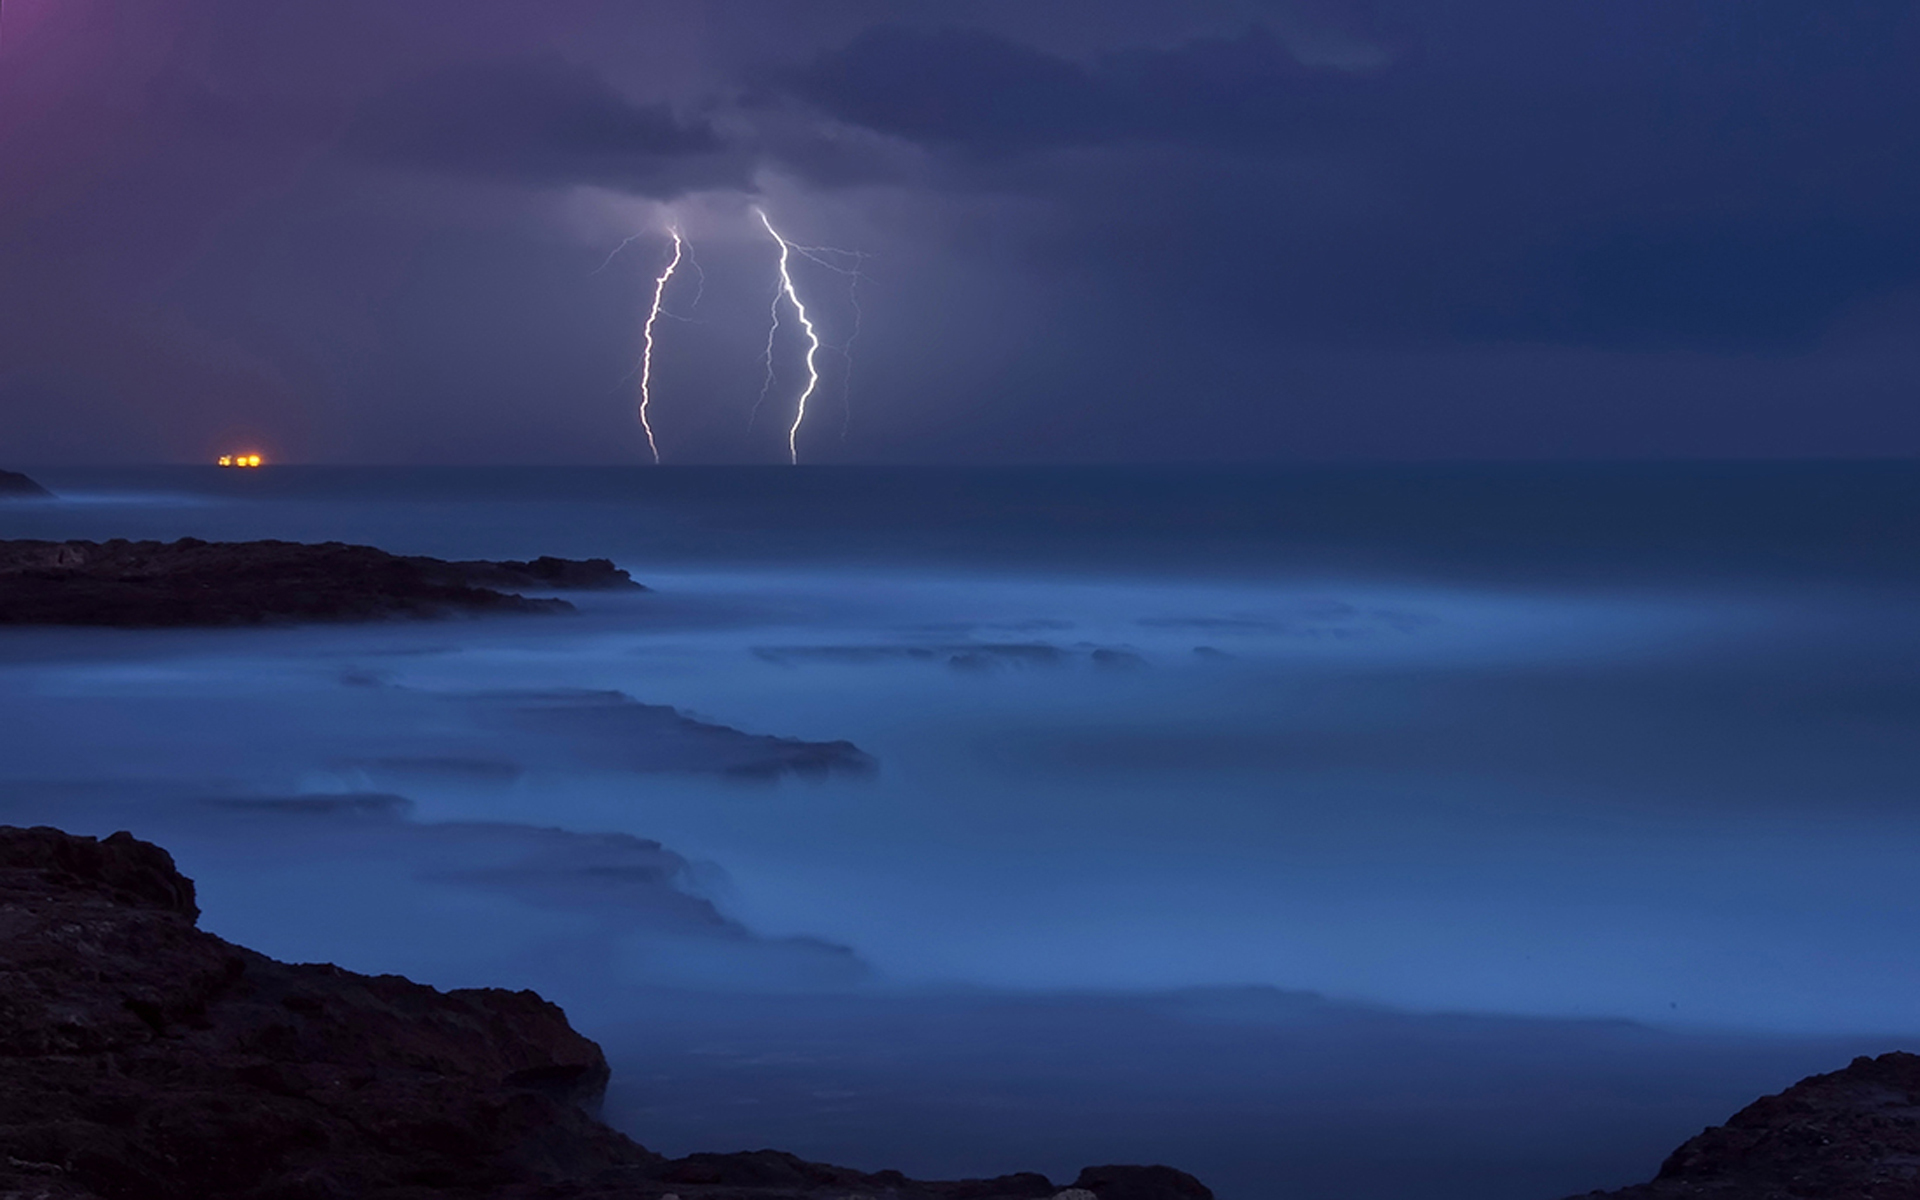 Lightning HD Wallpaper Background Image 1920x1200 ID309640 Wallpaper Abyss